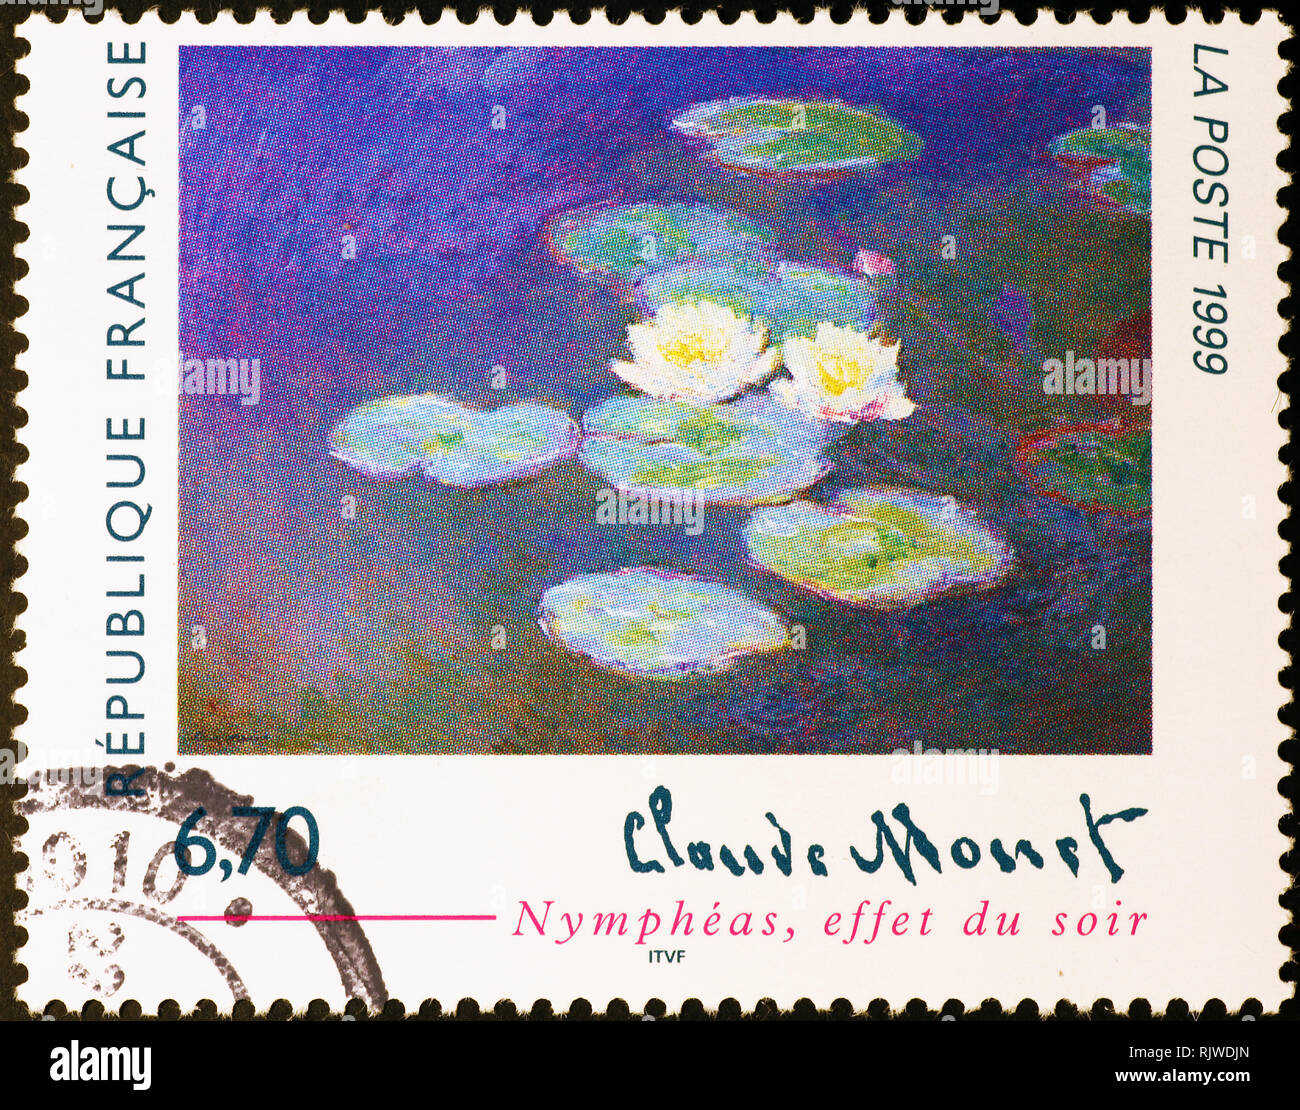 c226590ade French Postage Stamp Photos & French Postage Stamp Images - Alamy